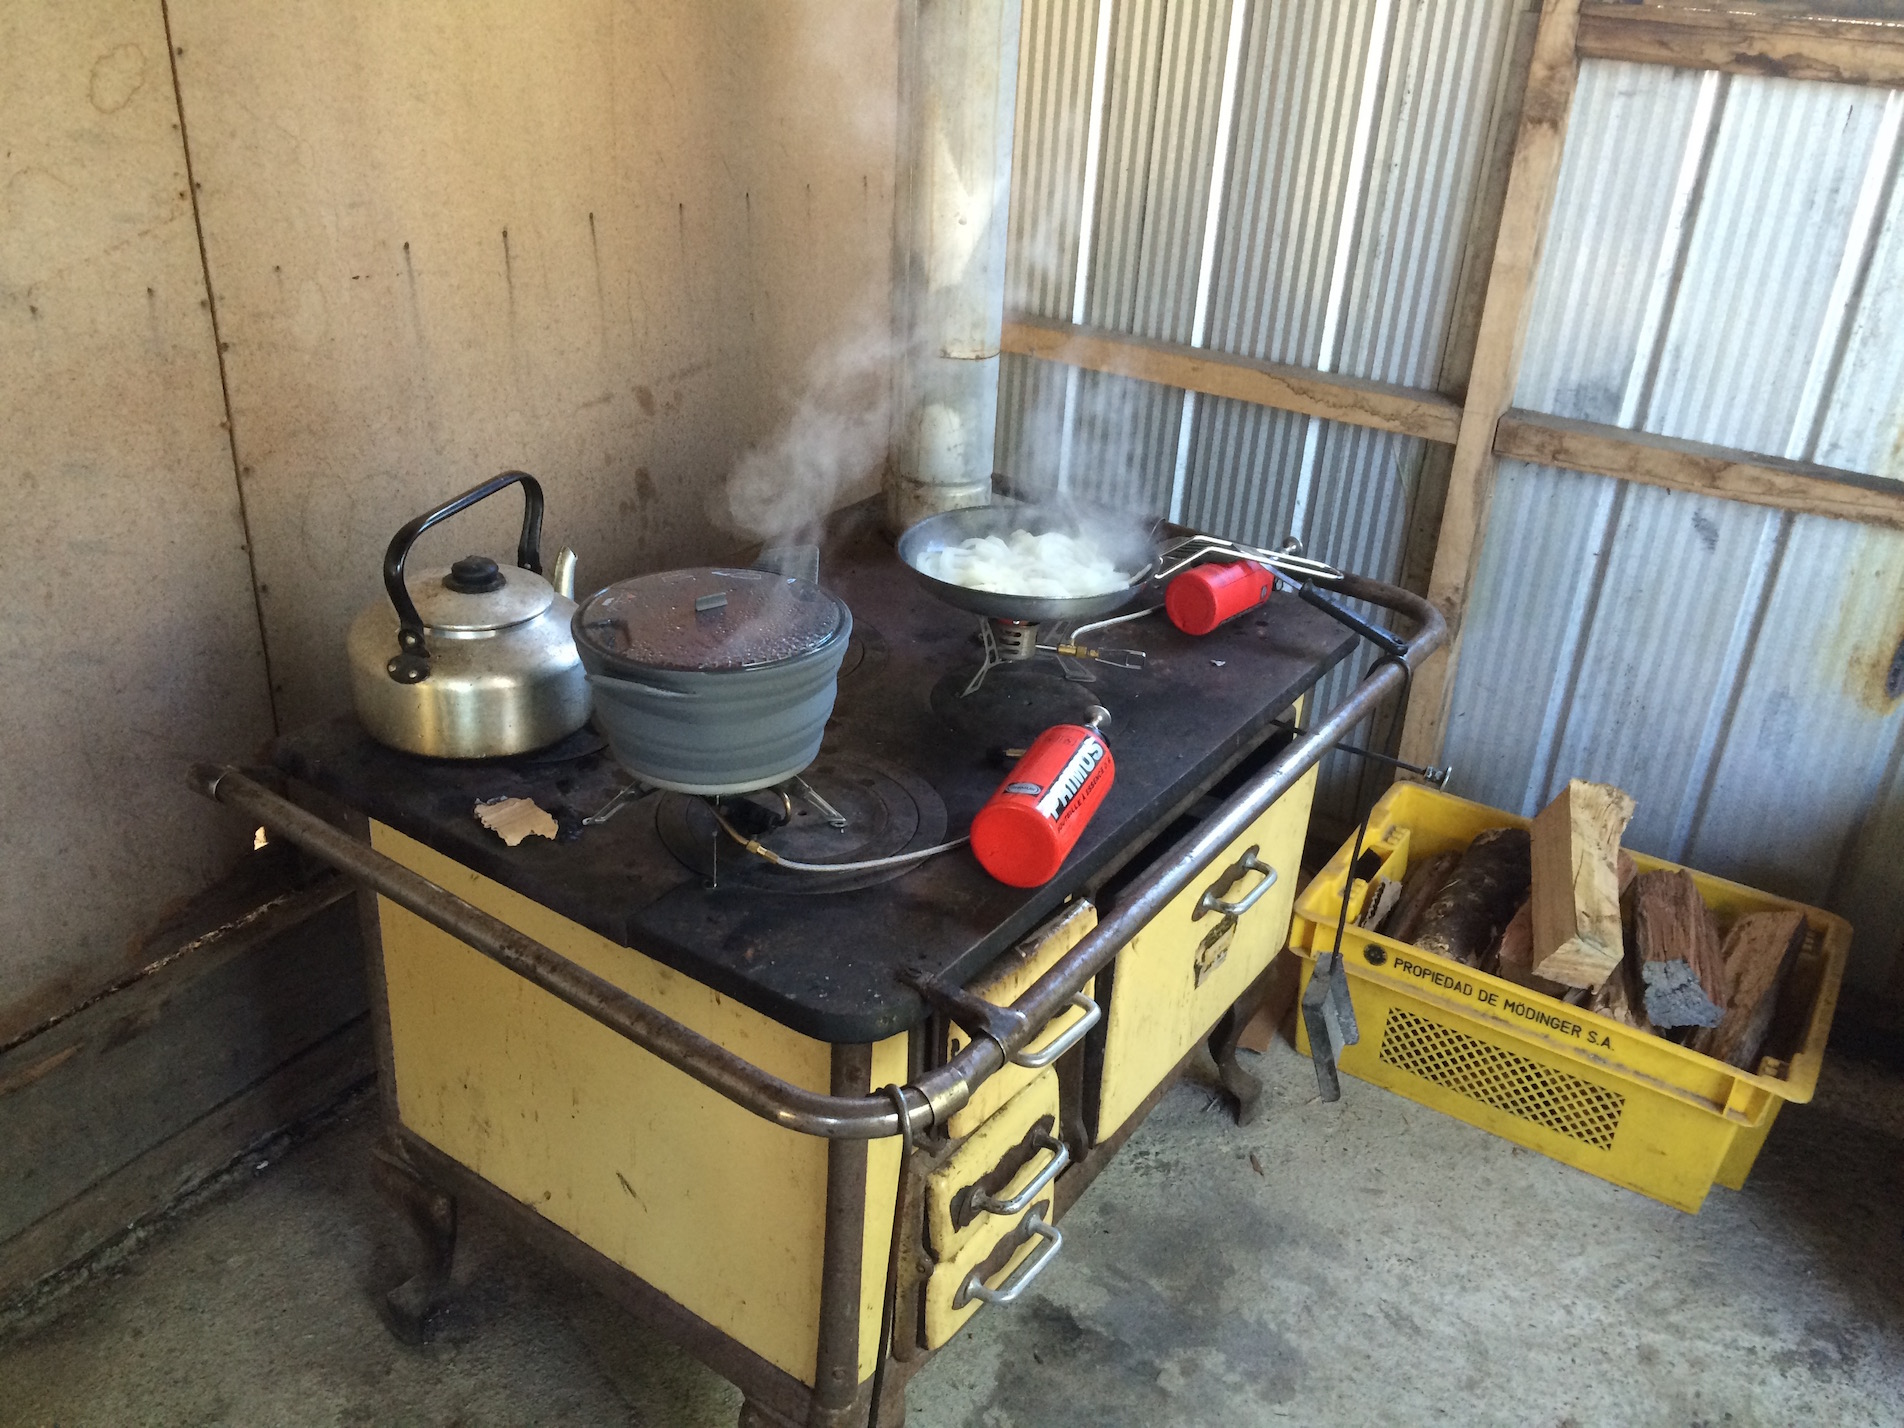 State of the art kitchen at campsite - so we just use our camp stoves on it.